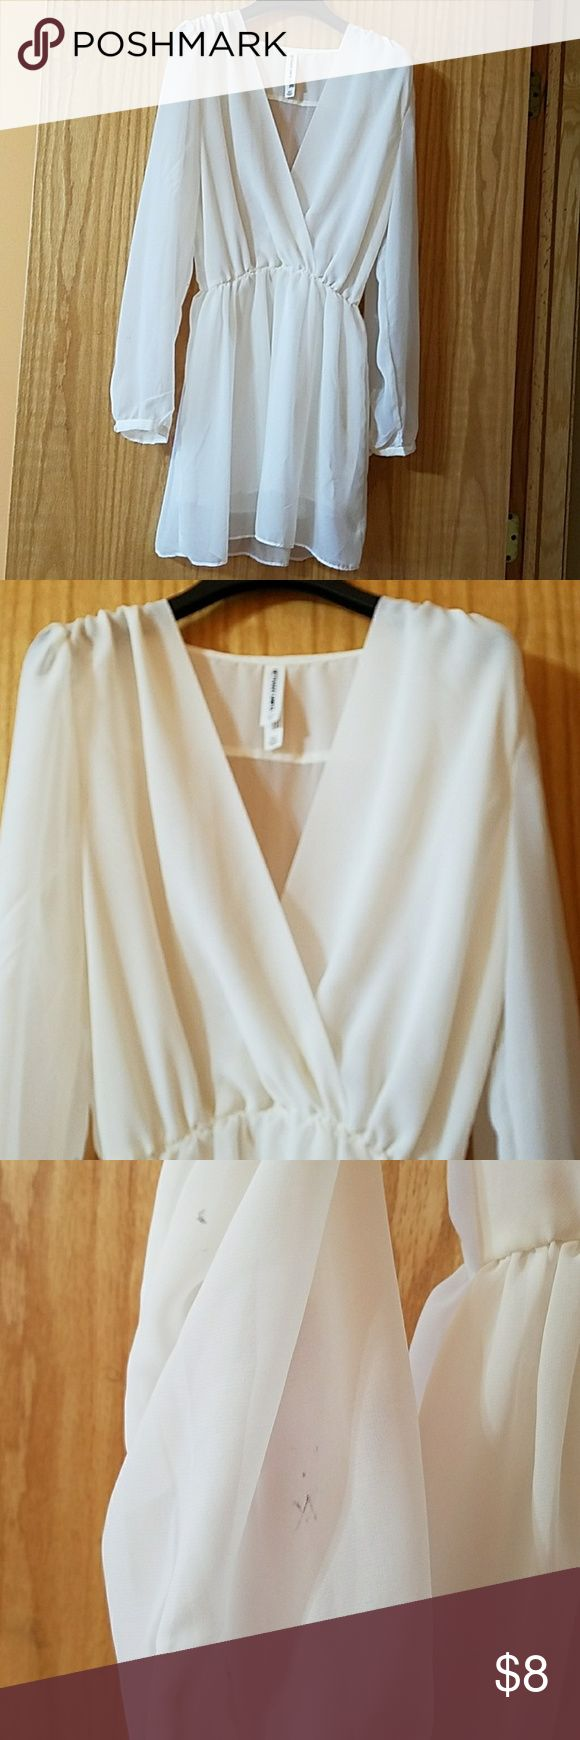 Sheer white dress from Bethany Mota collection Bethany Mota Collection. Hanger stain on right sleeve pictured above. Aeropostale Dresses Long Sleeve